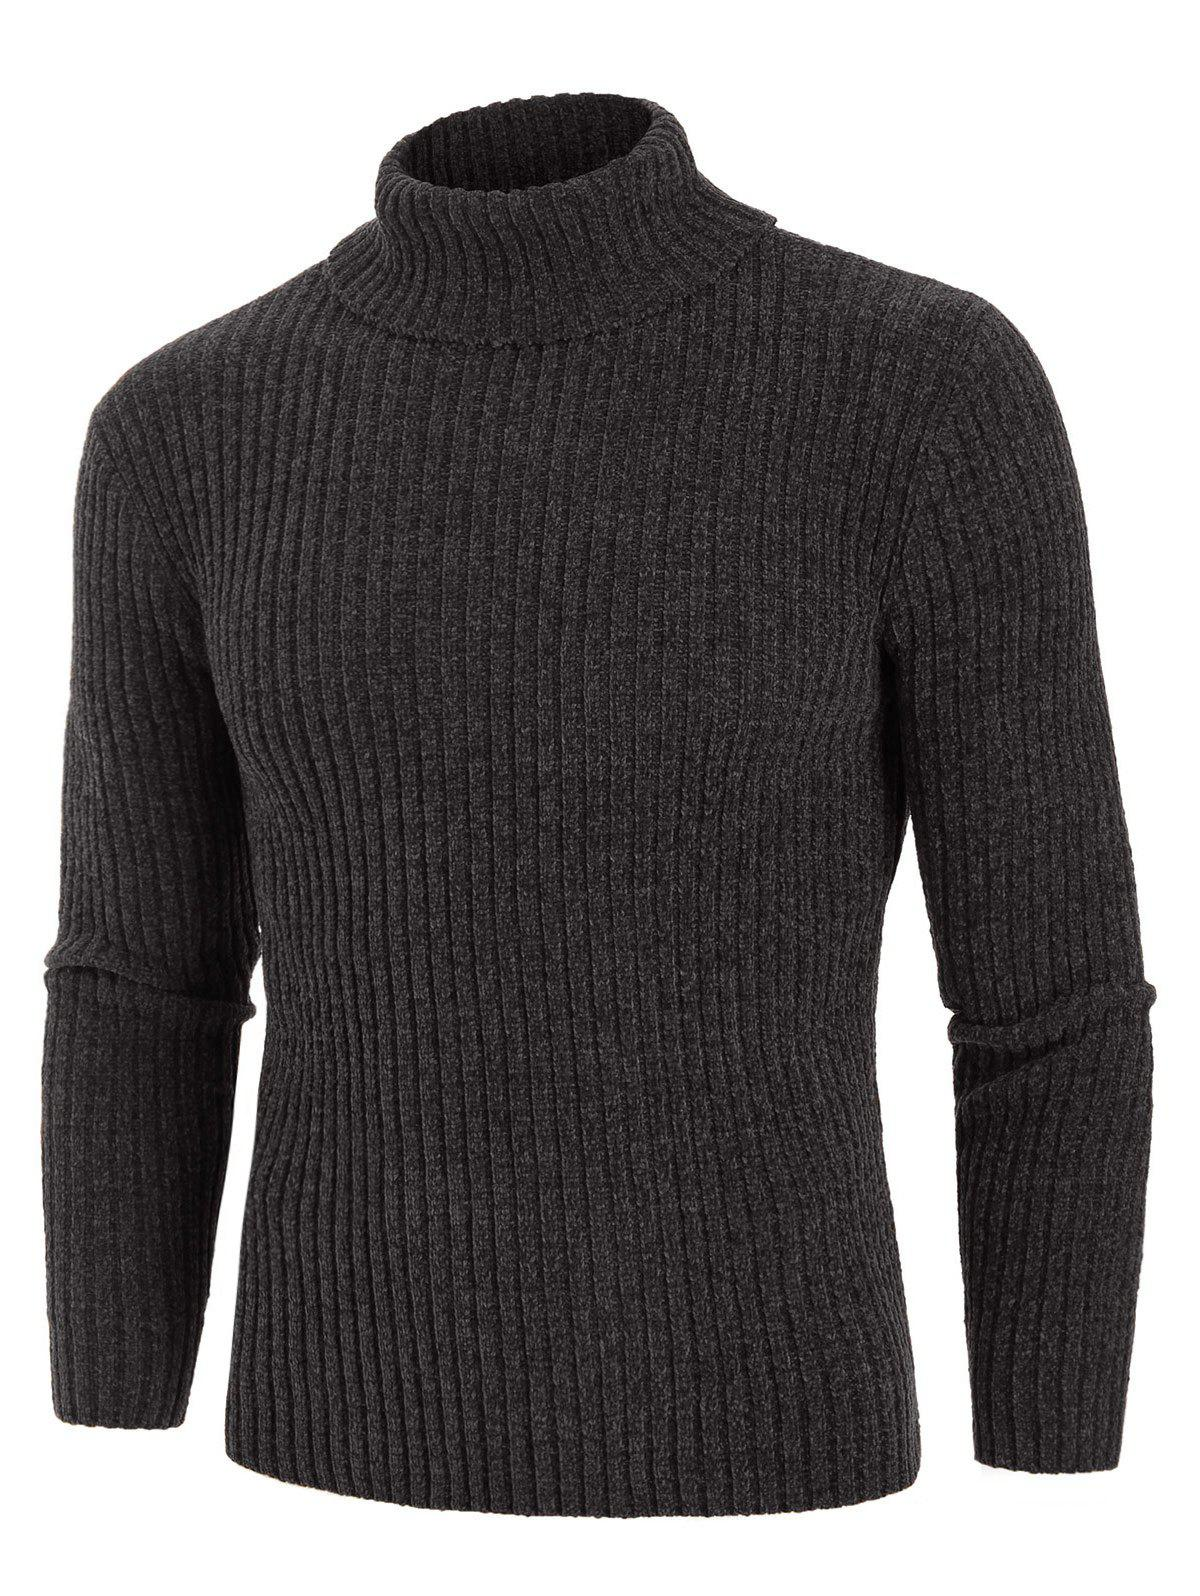 Plain Turtleneck Chenille Long Sleeve Sweater - DARK GRAY M